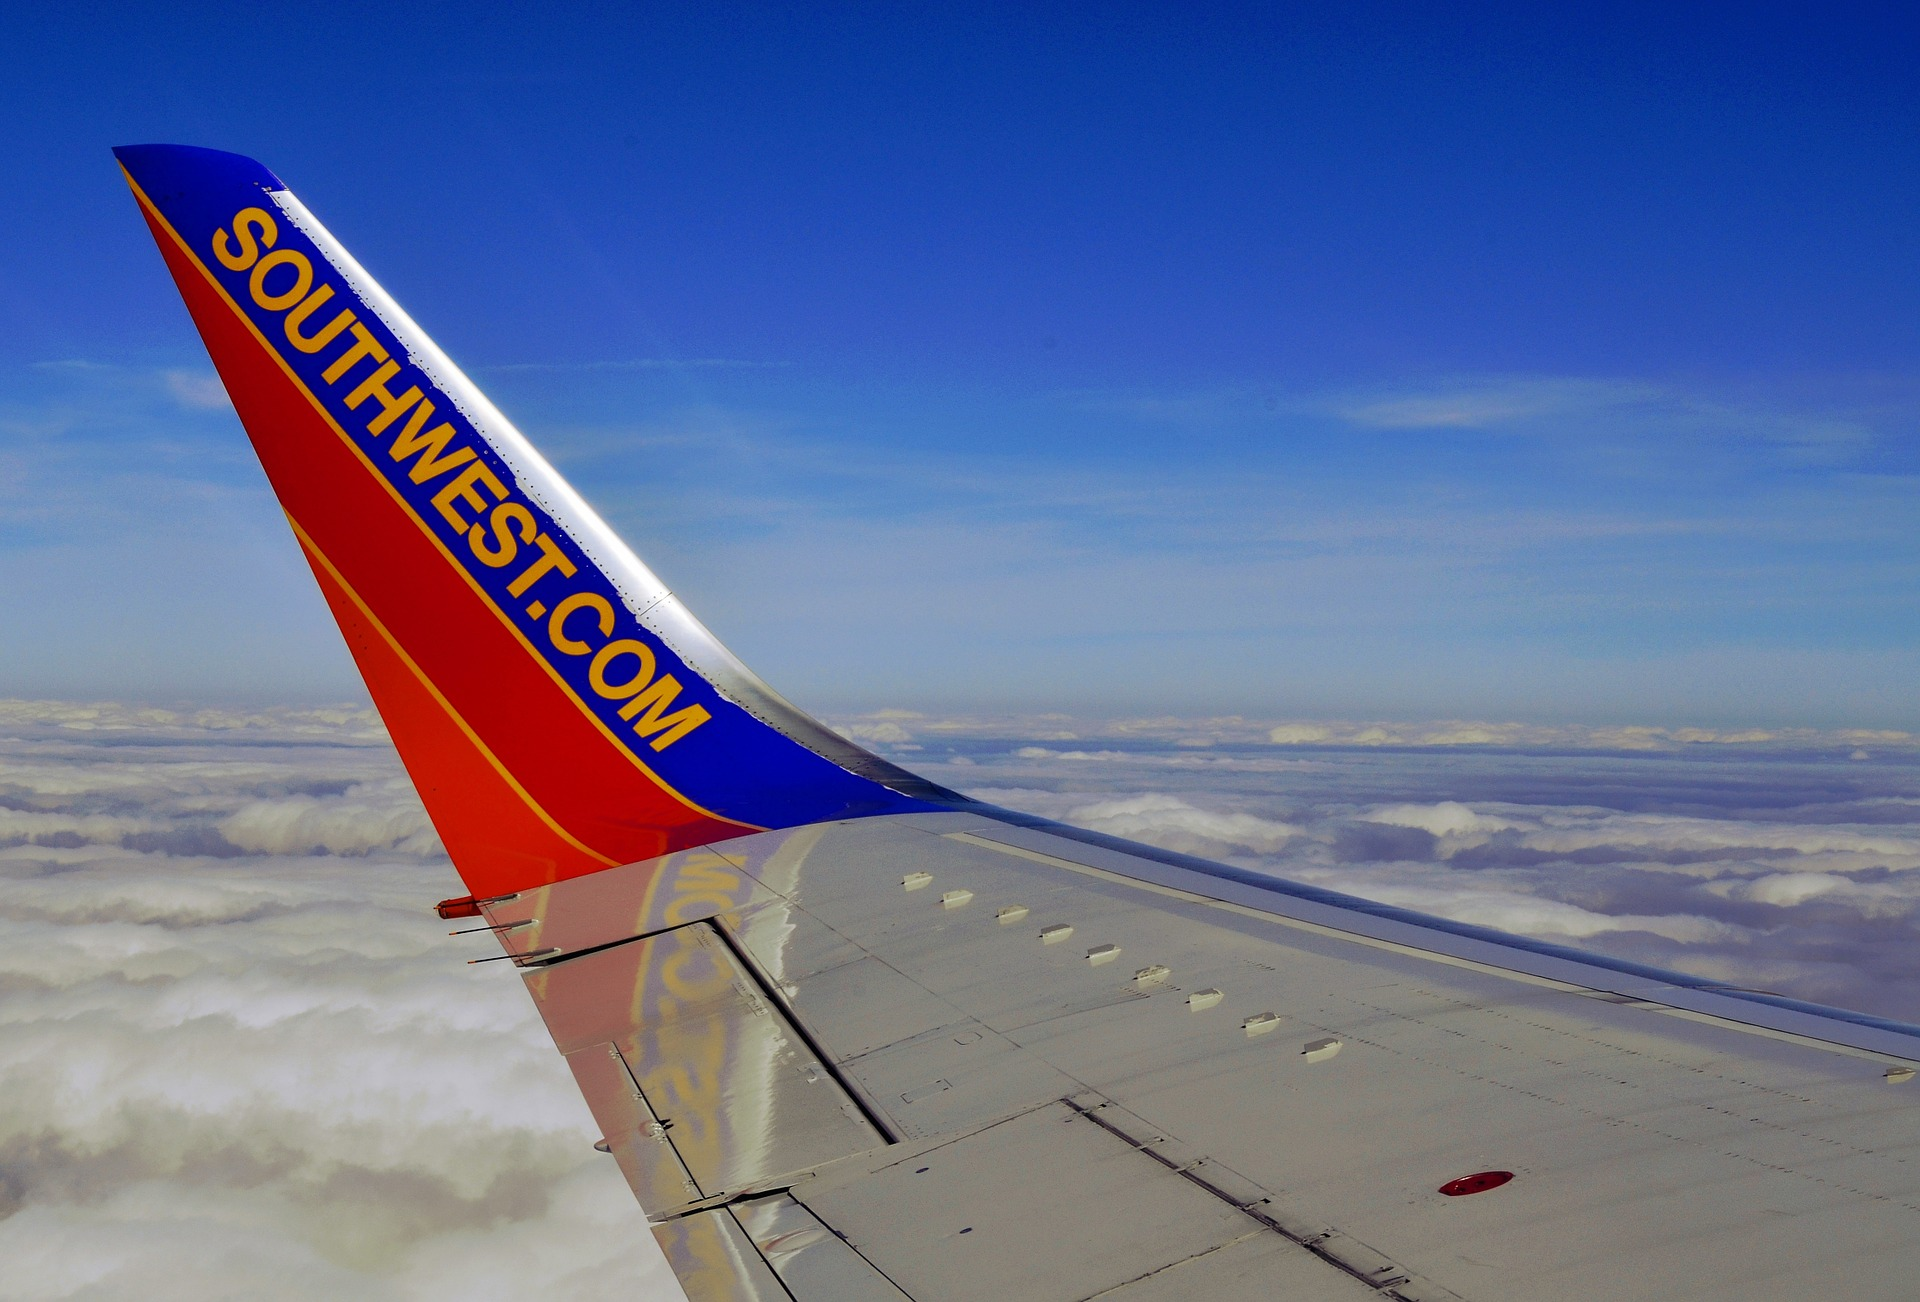 Southwest Airlines LUV stock news and analysis